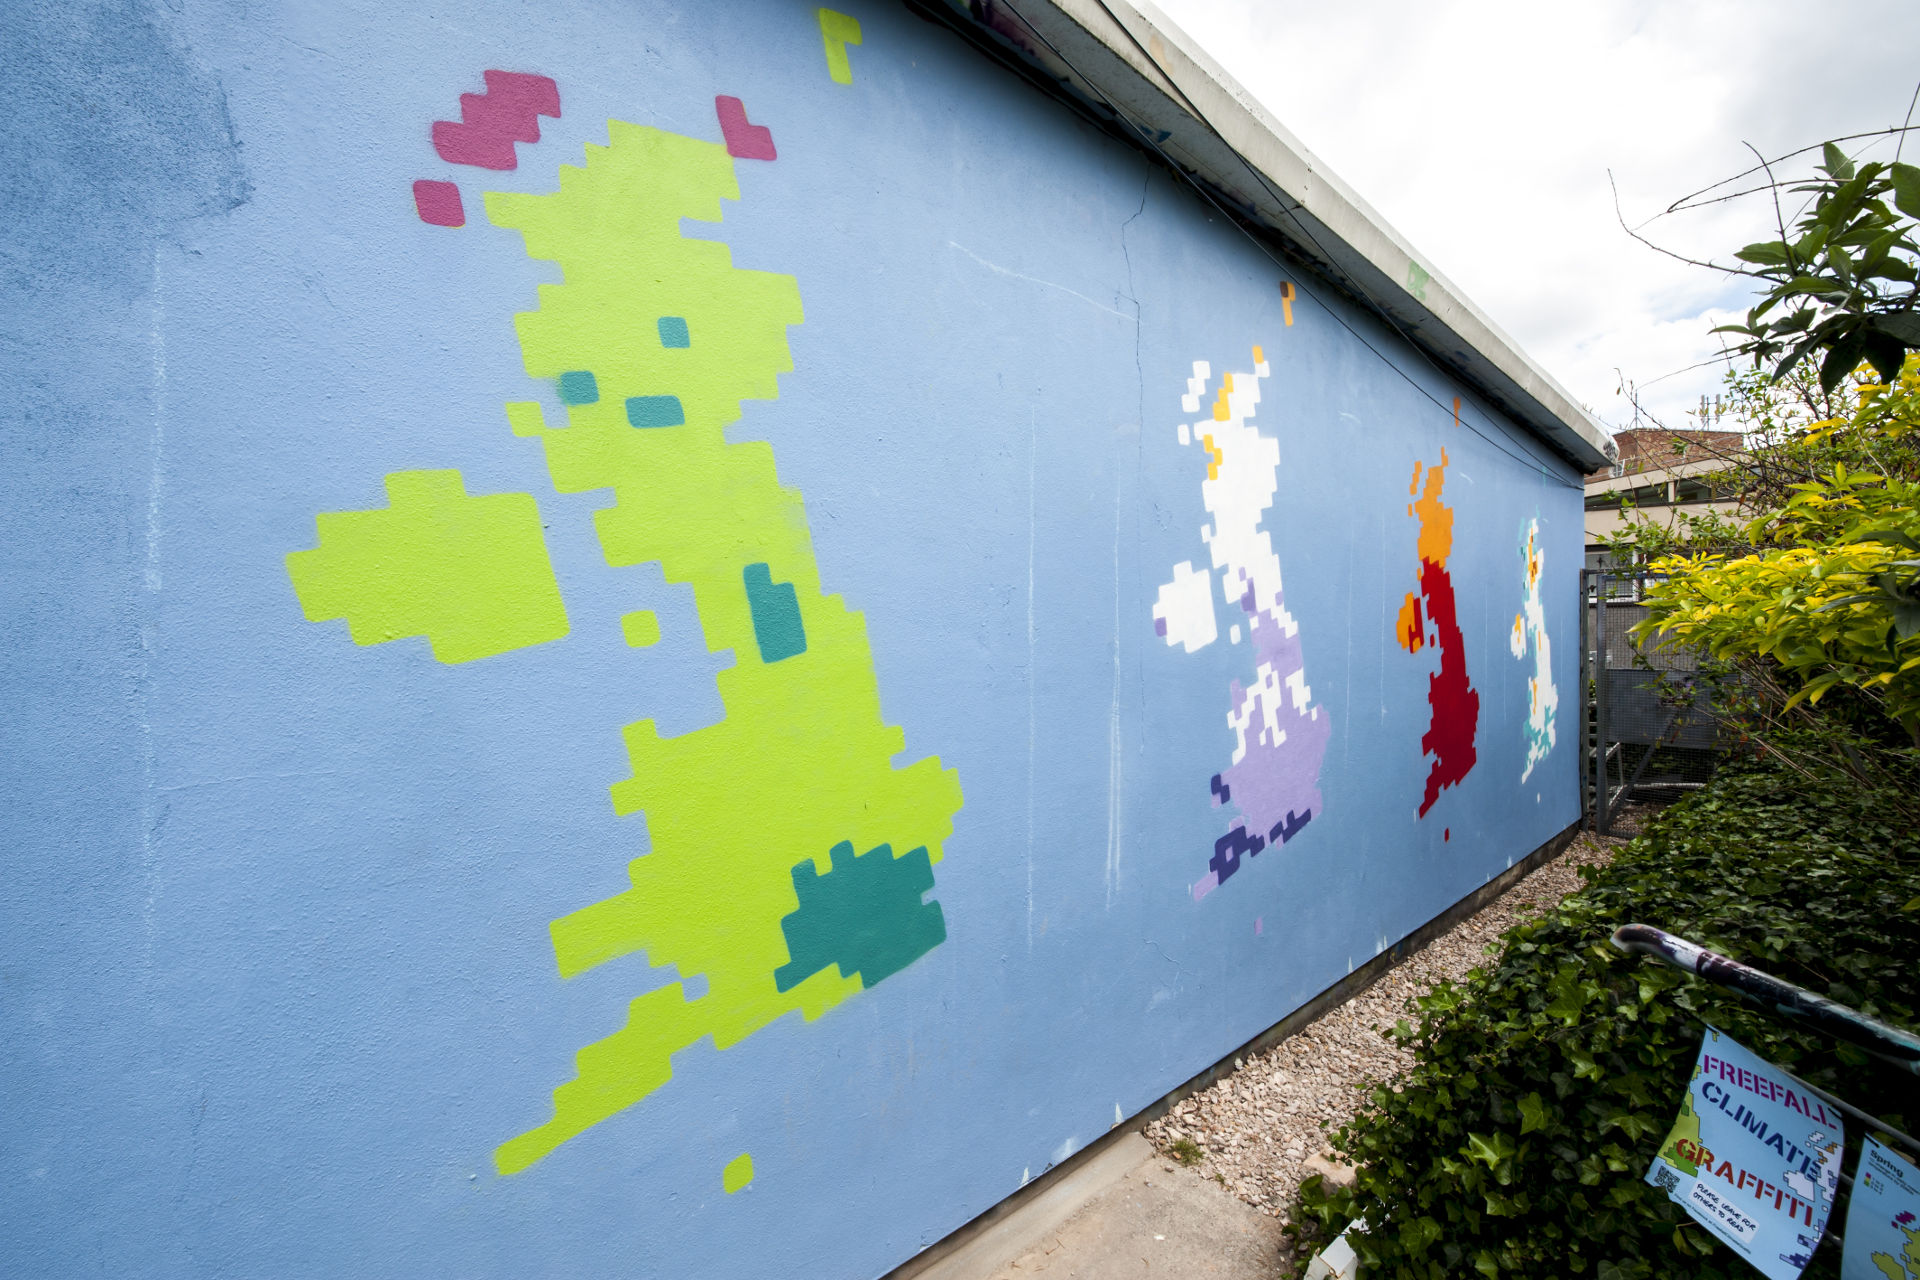 Freefall Climate Graffiti - UK Climate Projections for Spring, Summer, Autumn, Winter. Photo credit: Clive Chilvers.